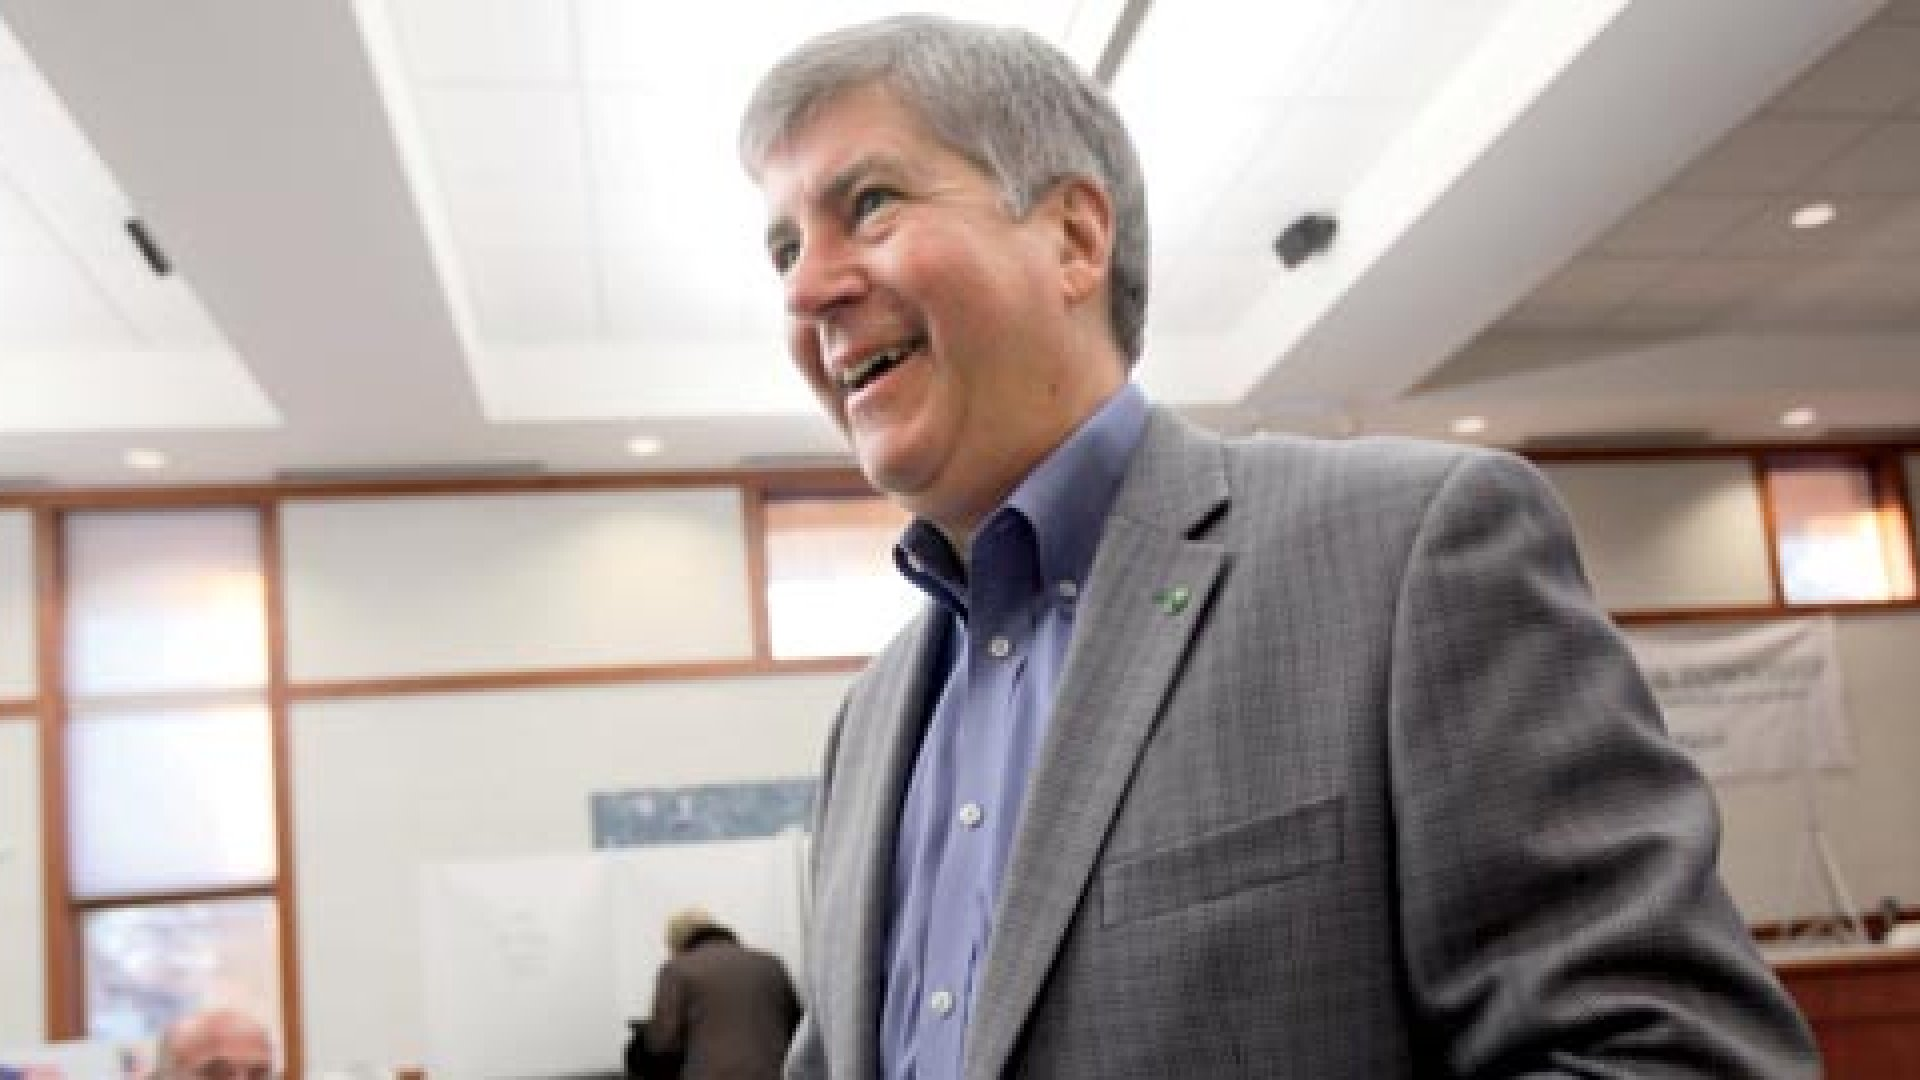 <b>Aiming to Please </b>Michigan Governor Rick Snyder vows to bring business notions of customer service to state government.